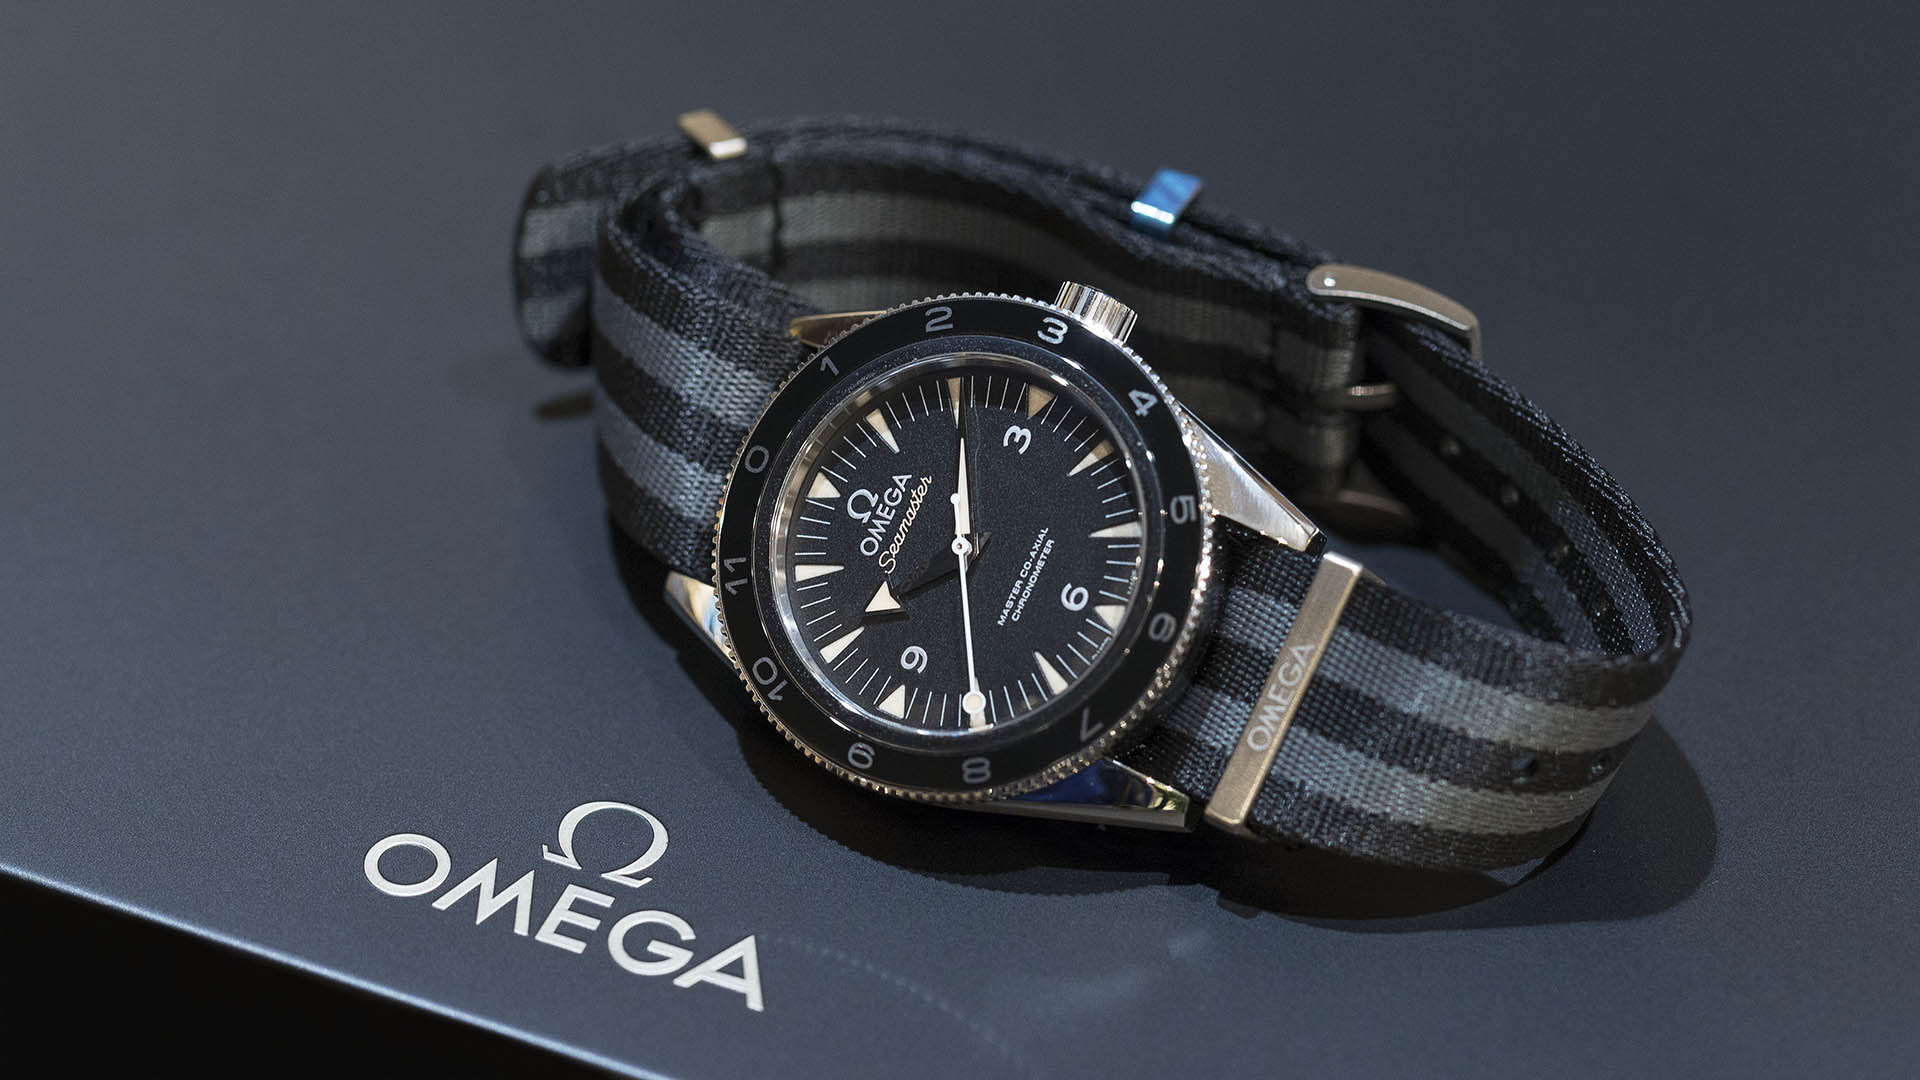 SEAMASTER_300_OMEGA_MASTER_CO-AX-AL_41-MM_-22SPECTRE-22_Limited_Edition_233-32-41-21-01-001_1p.jpg